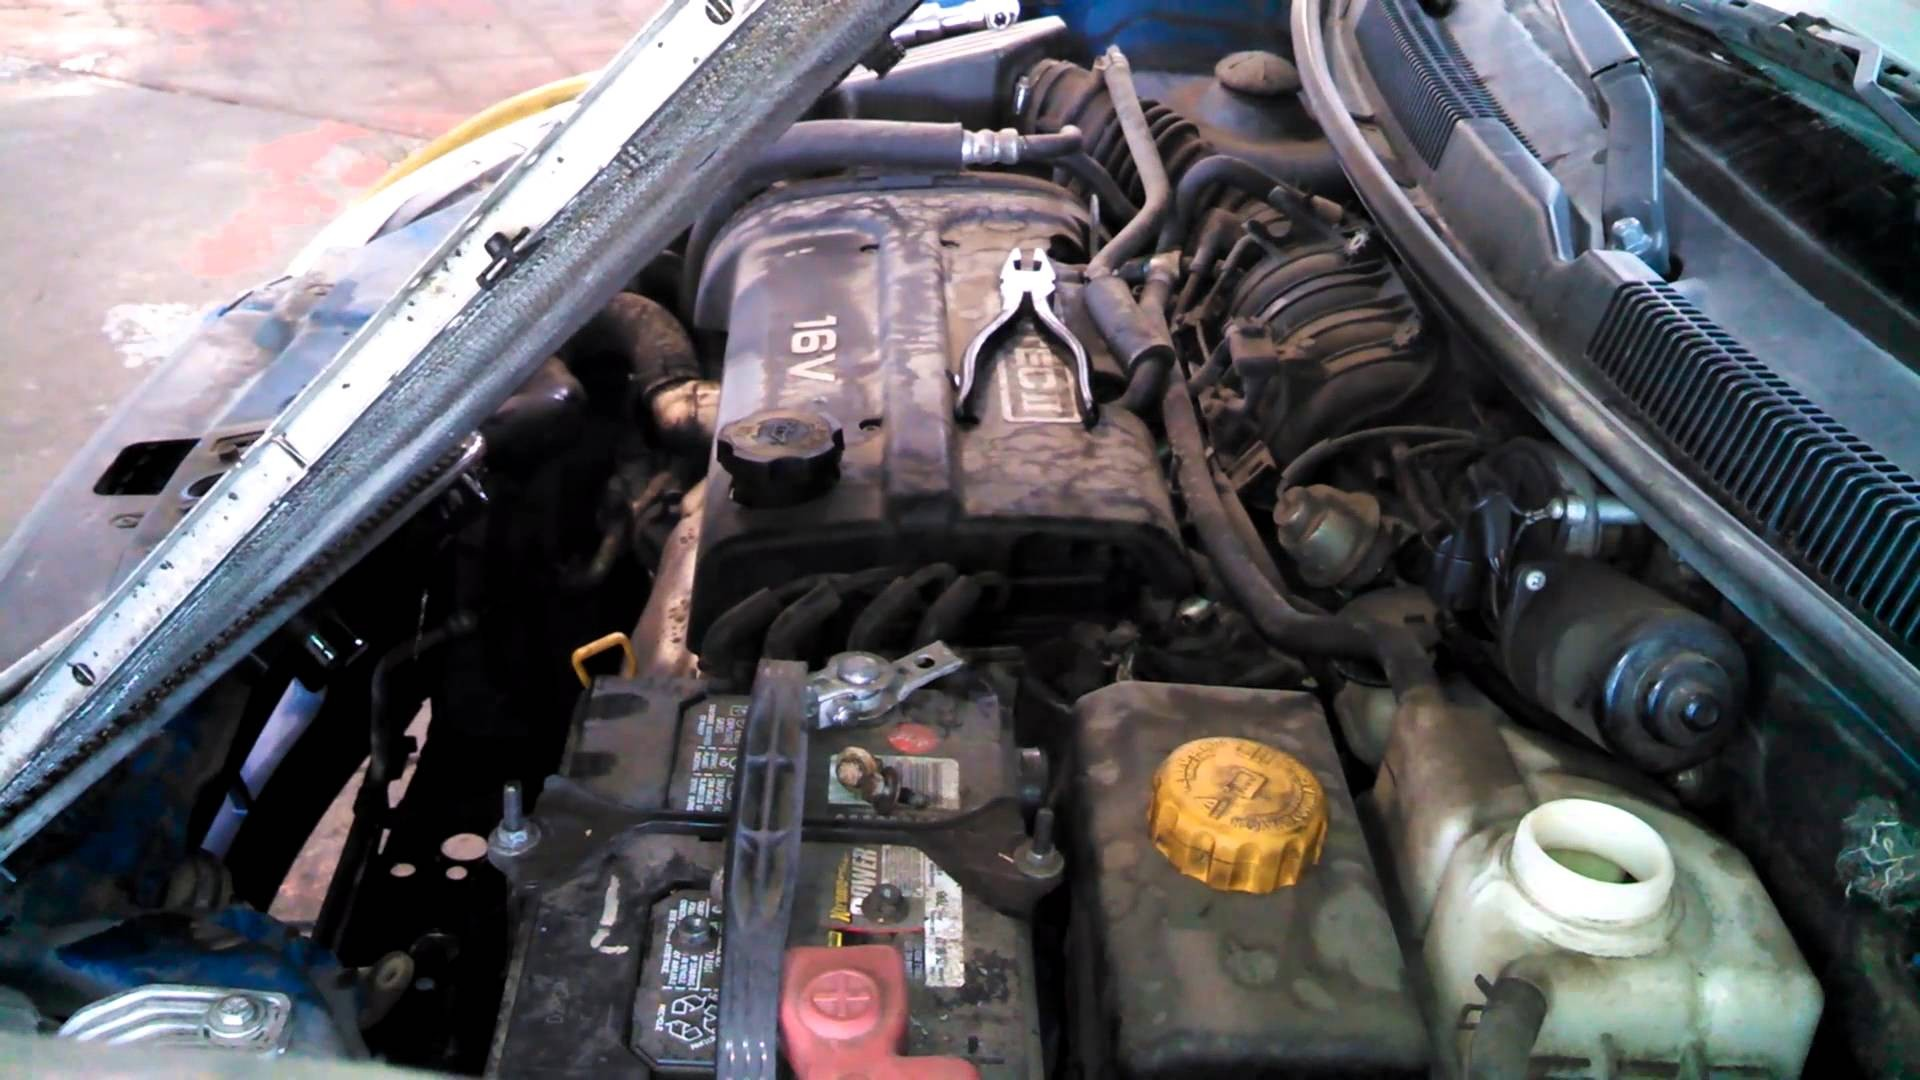 2007 Chevy Aveo Engine Diagram Radiator Replacement Chevrolet Aveo 2007  Install Remove Replace How Of 2007